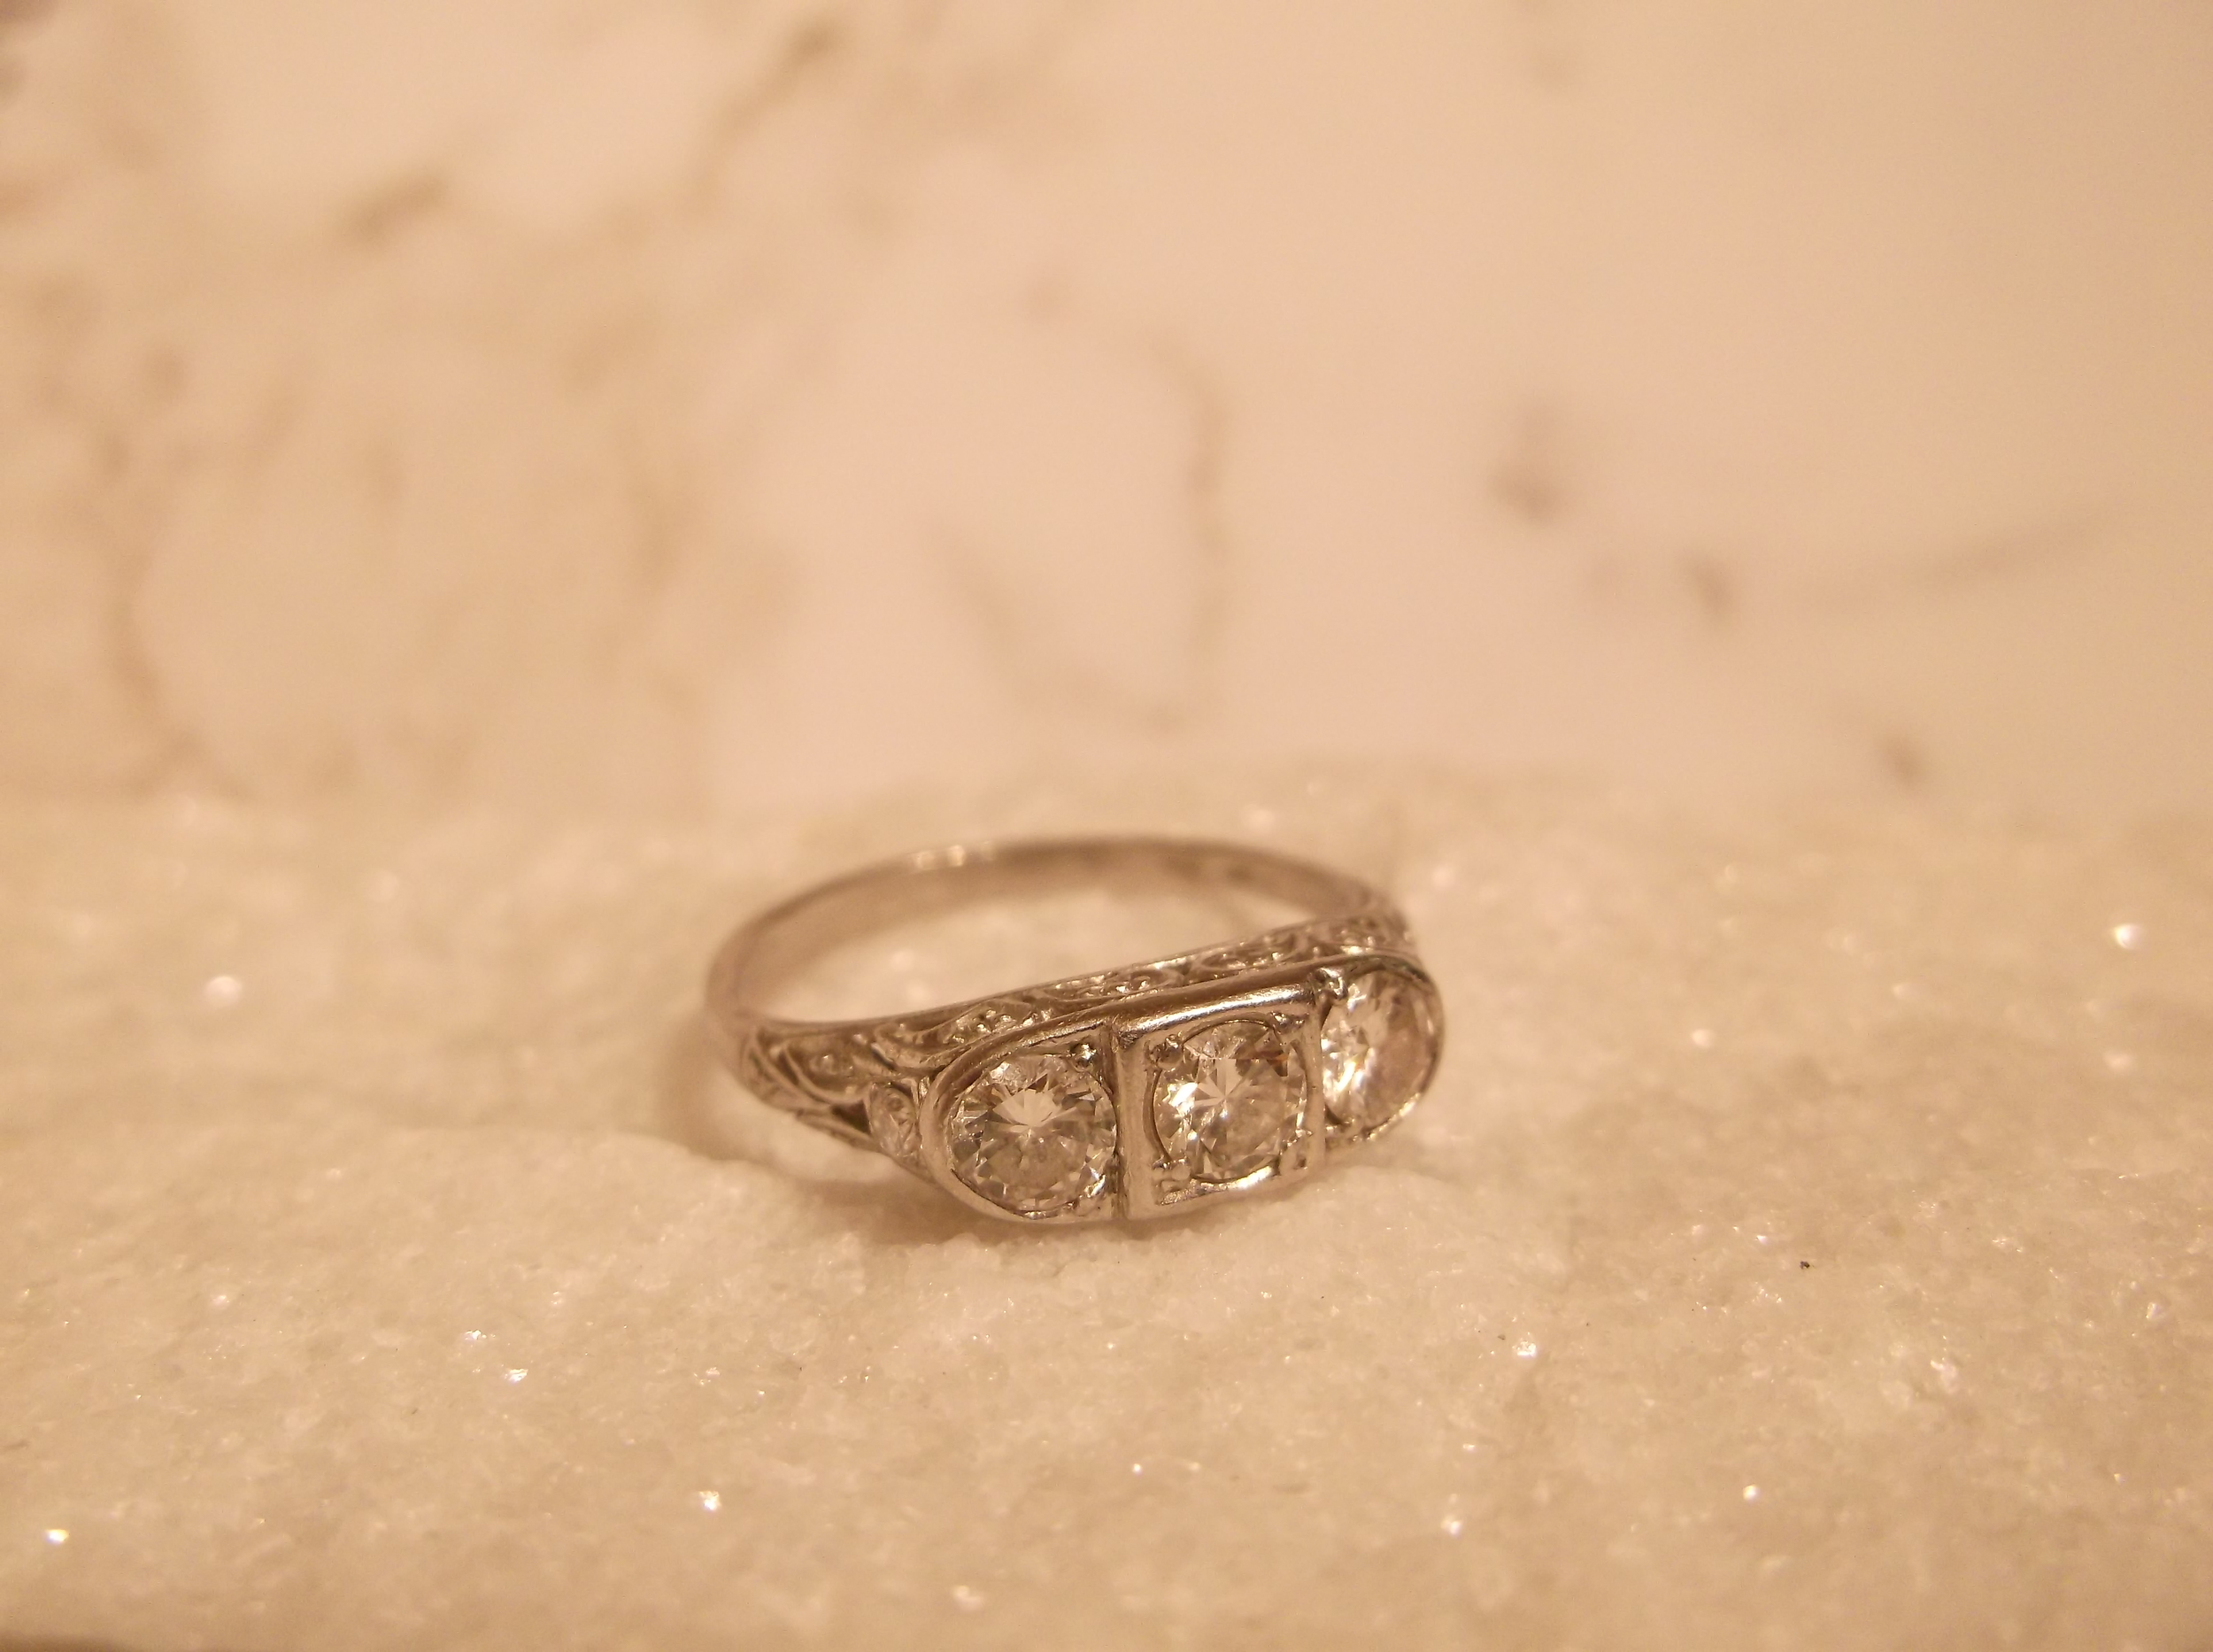 SOLD - Platunum, three stone ring, .38 carats total weight